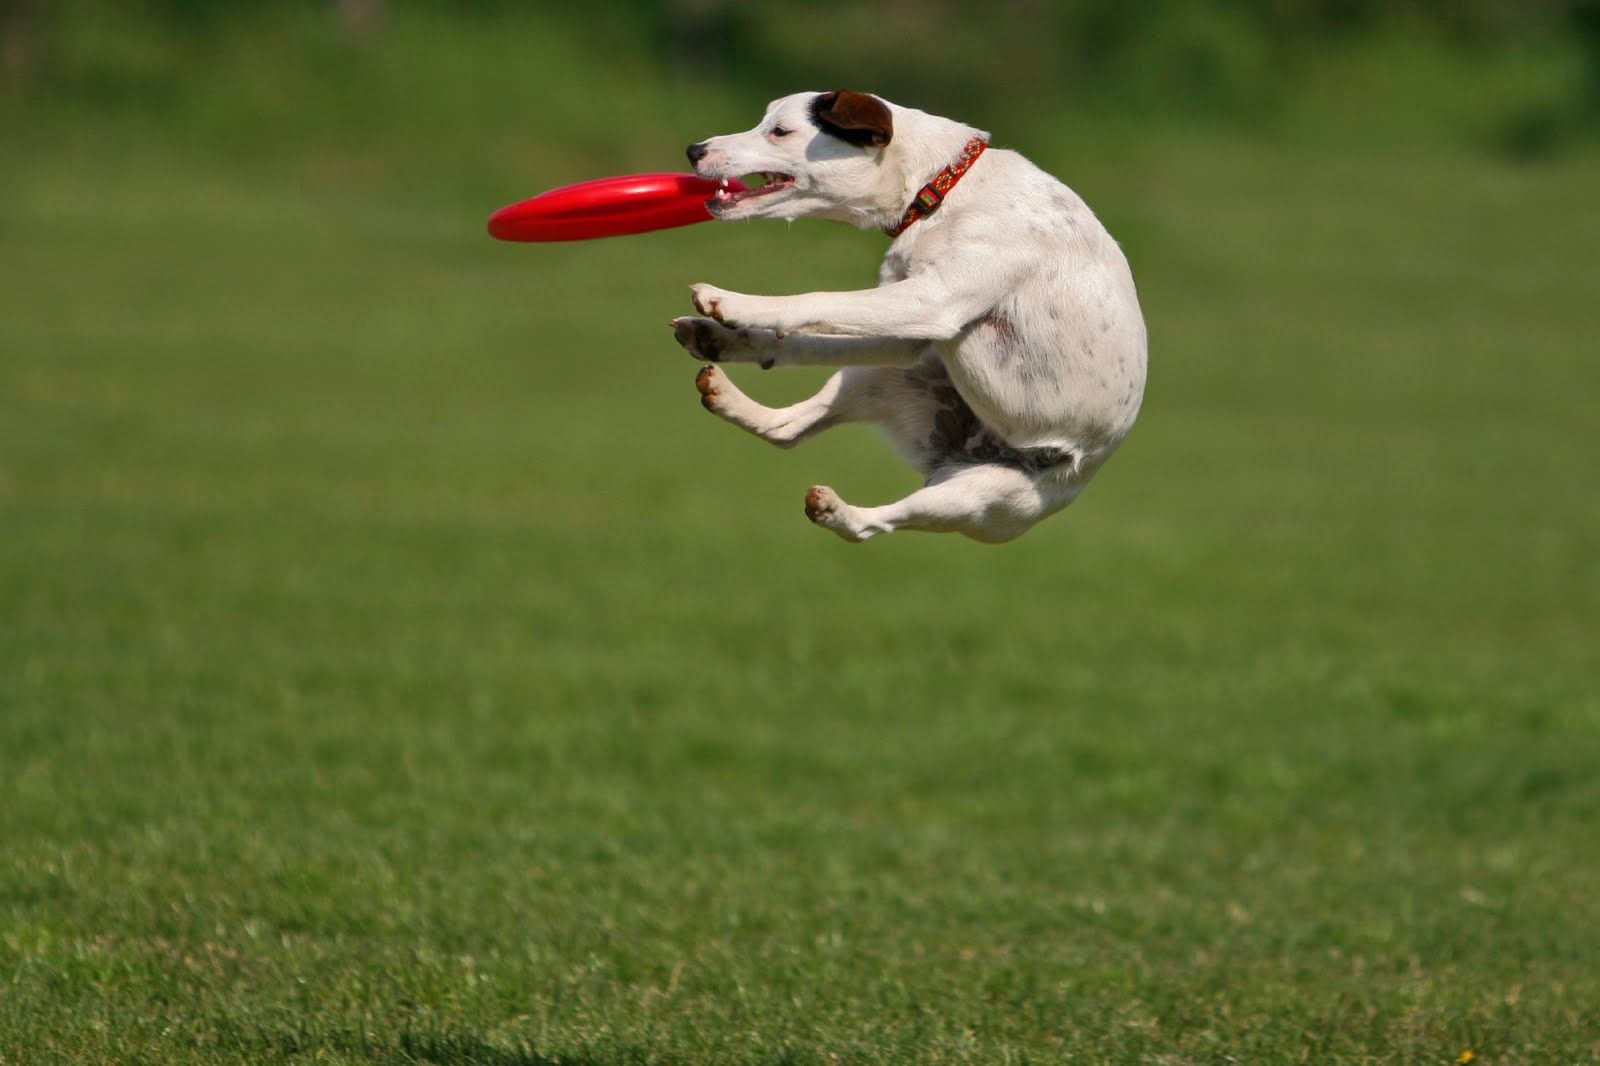 Frisbees Flying Dog Hyper Dog Sporting Dogs